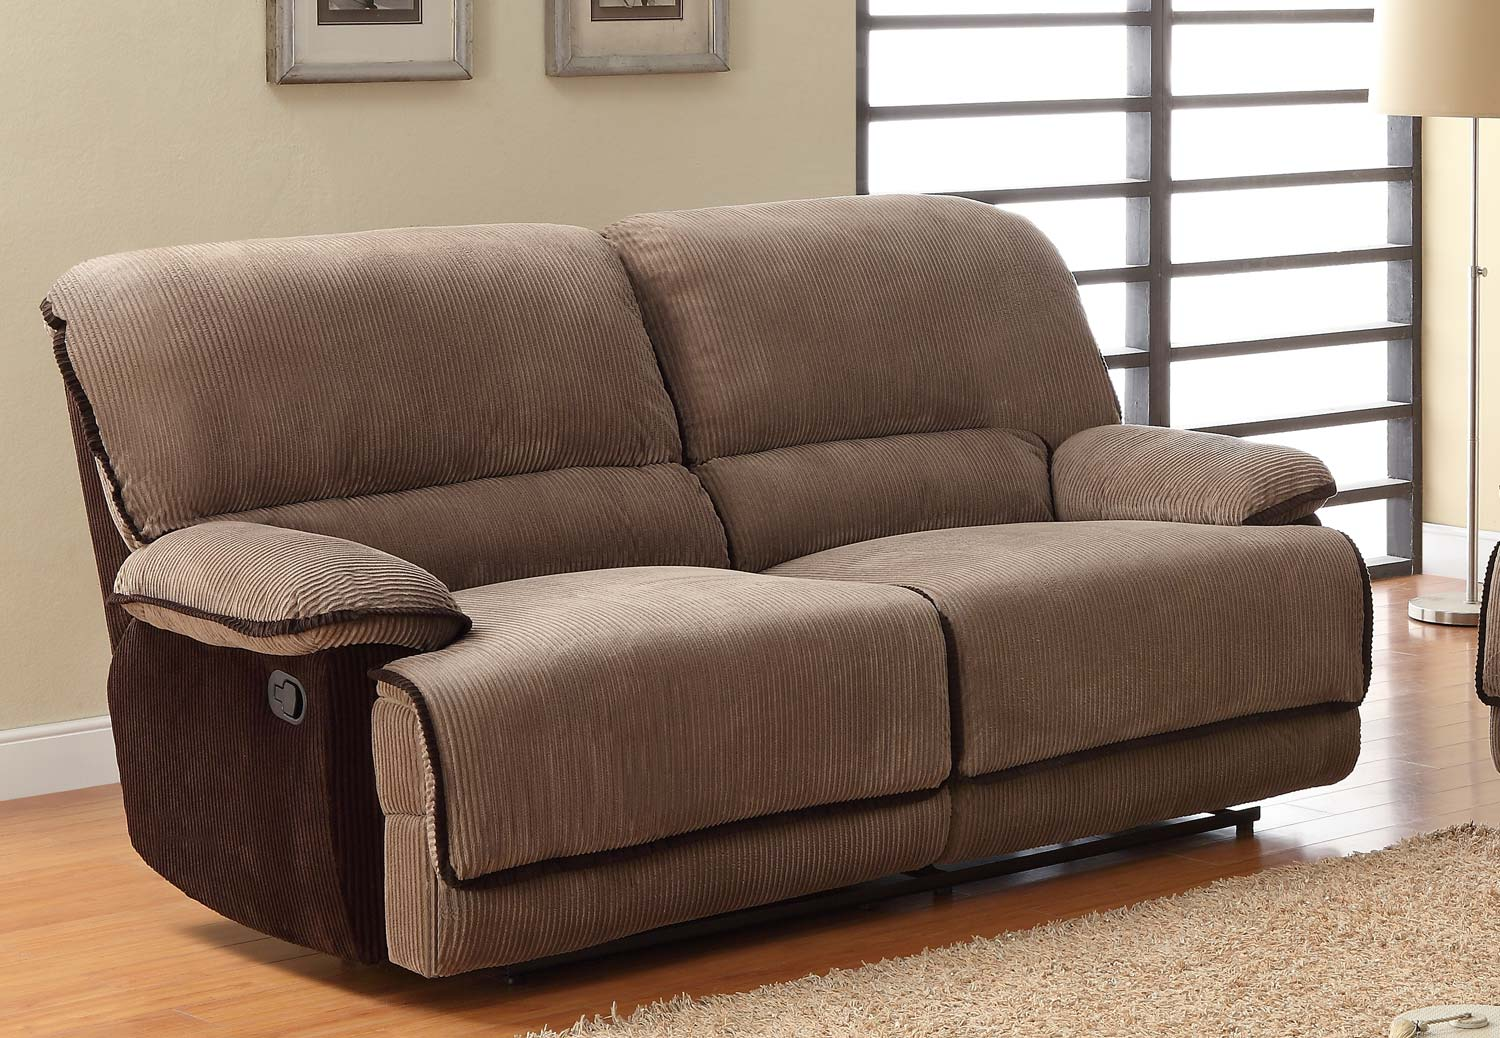 Homelegance grantham sofa dual recliner brown corduroy 9717 3 Cover for loveseat